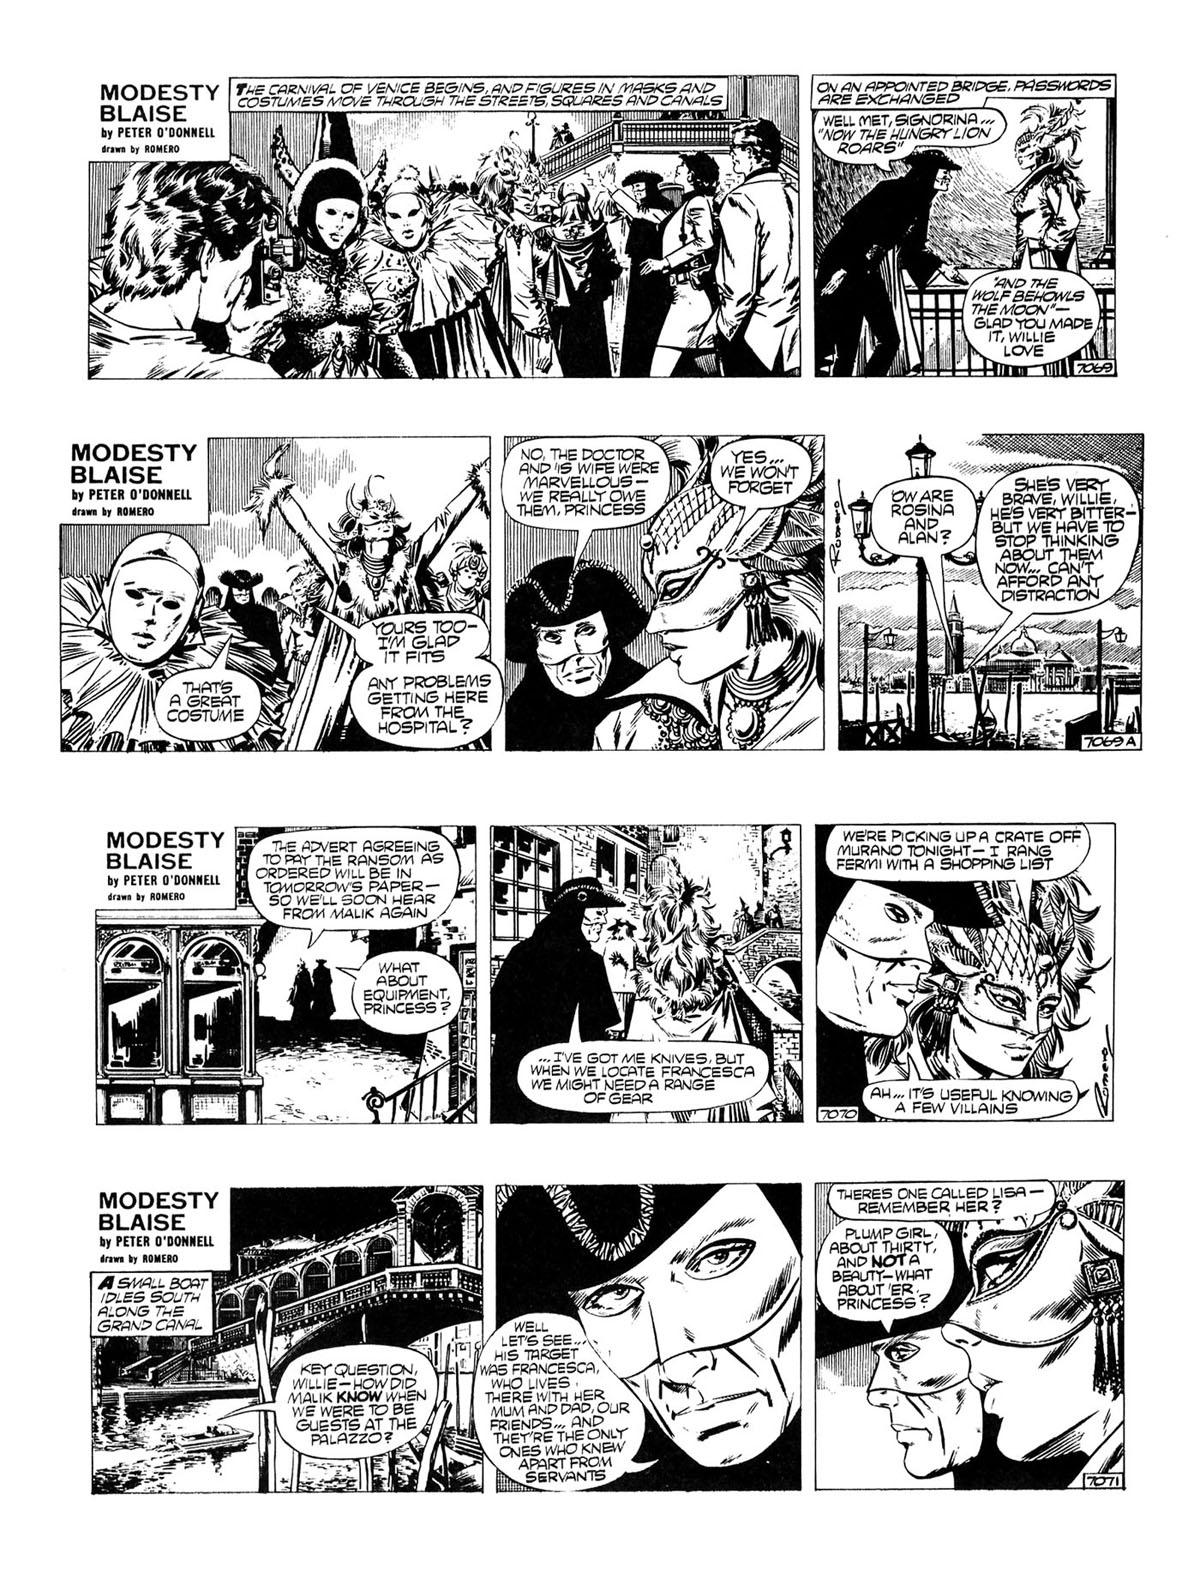 Modesty Blaise Live Bait review